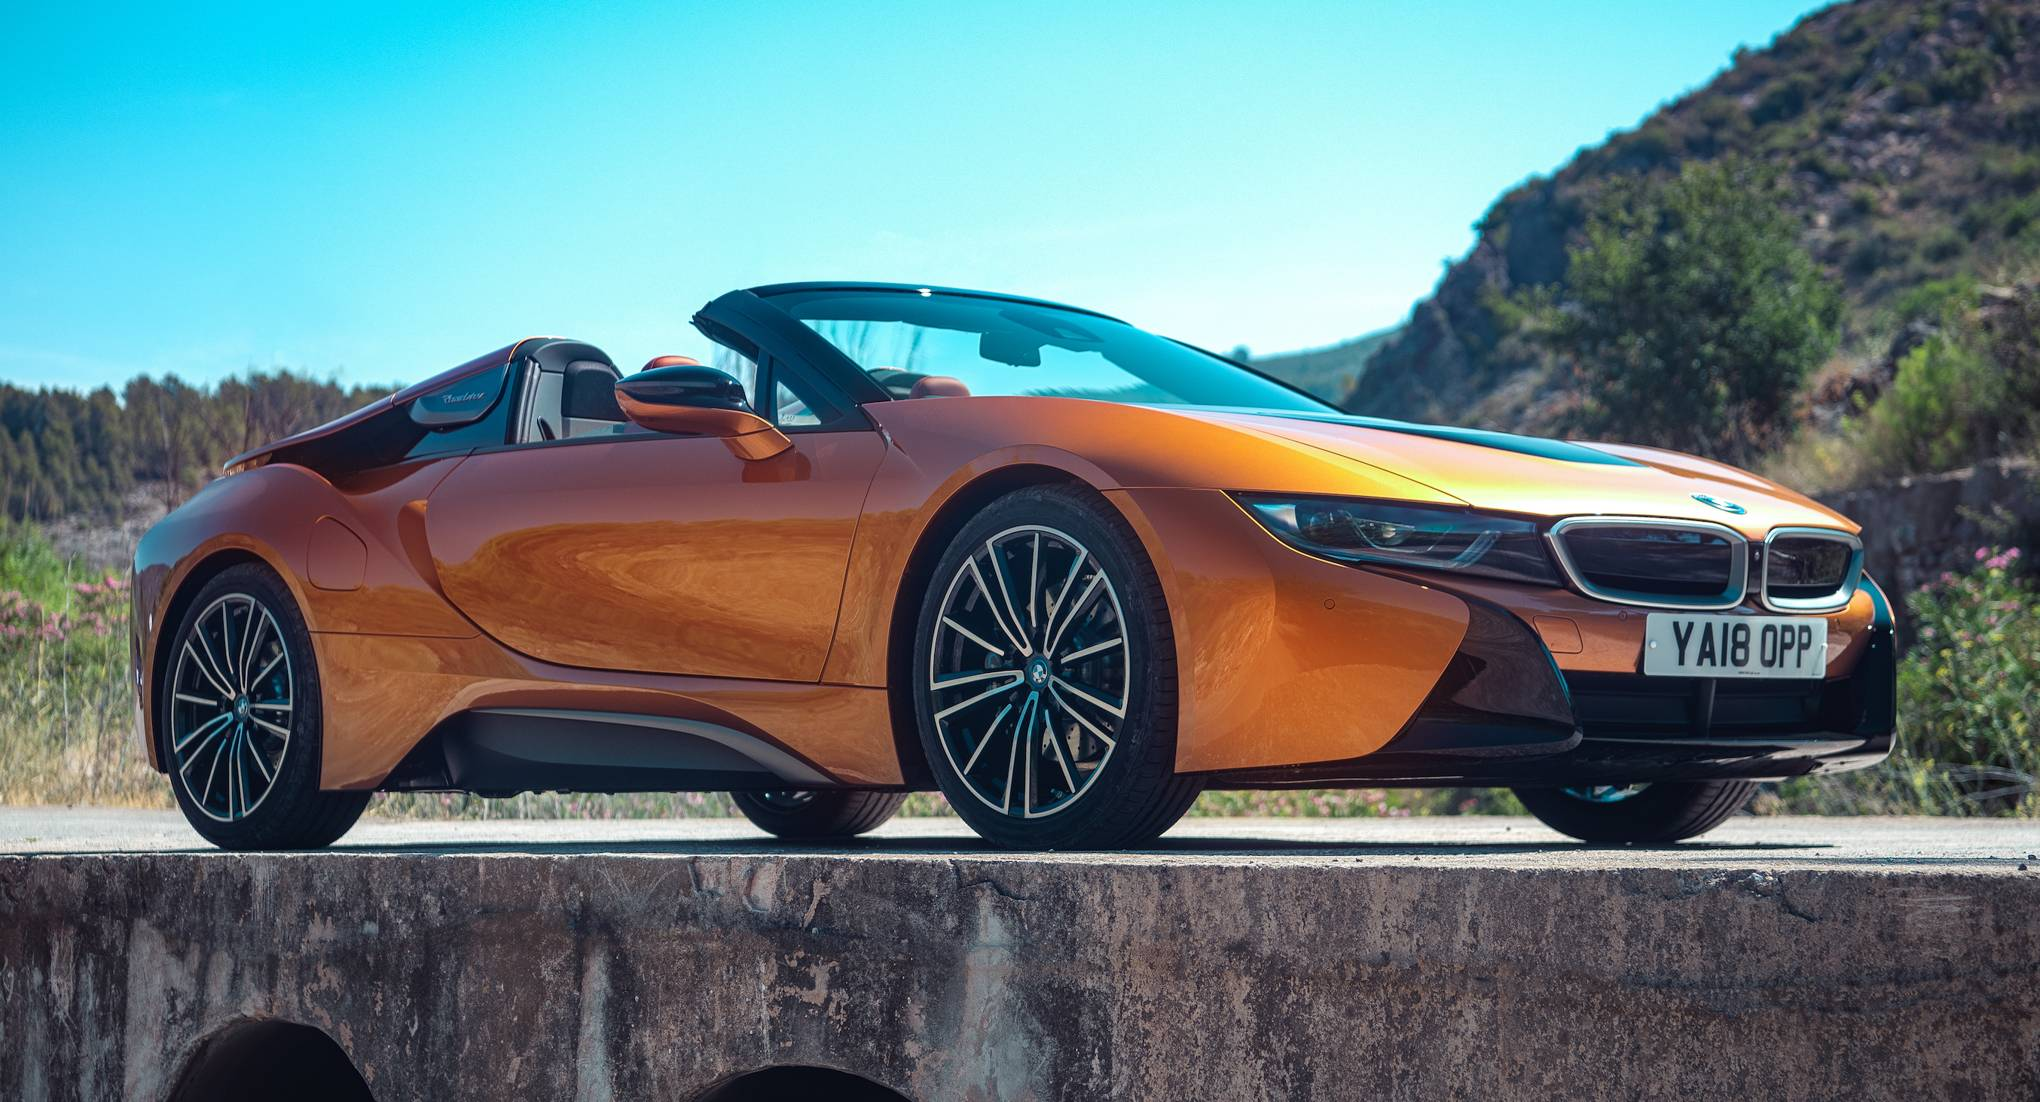 The Bmw I8 Roadster Review A Hybrid Electric Top Down Triumph